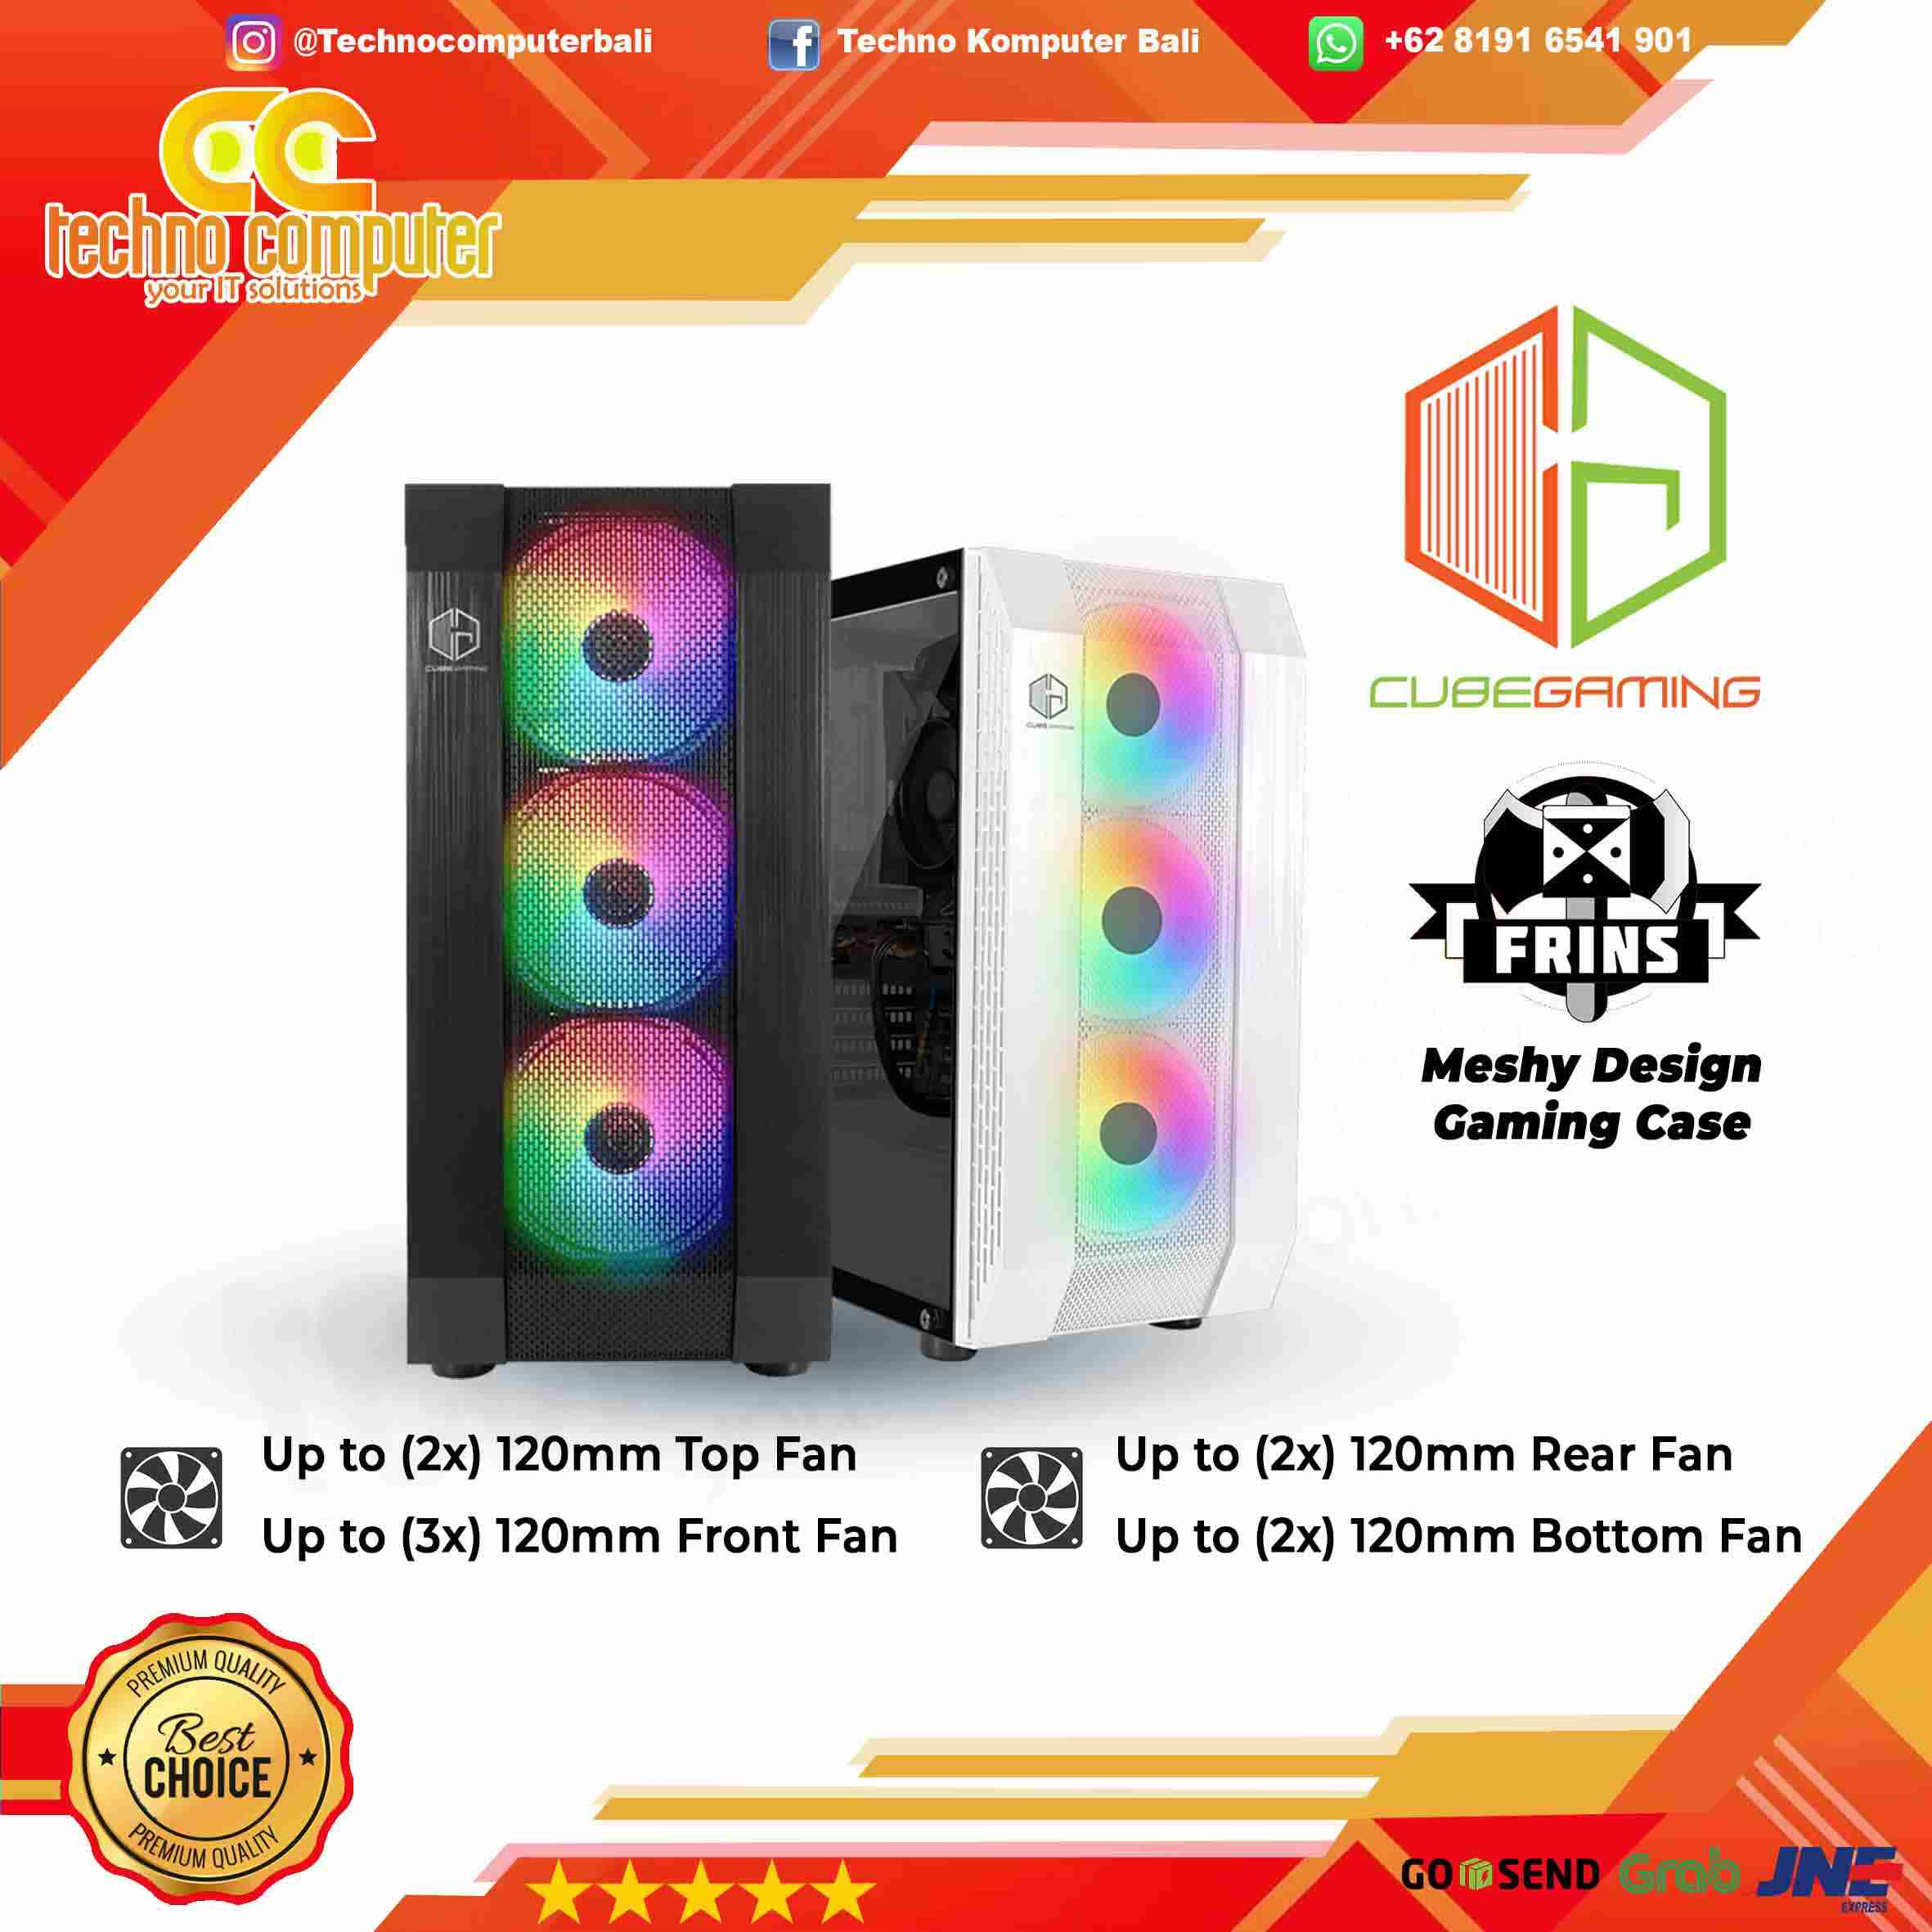 CASING CUBE GAMING FRINS WHITE